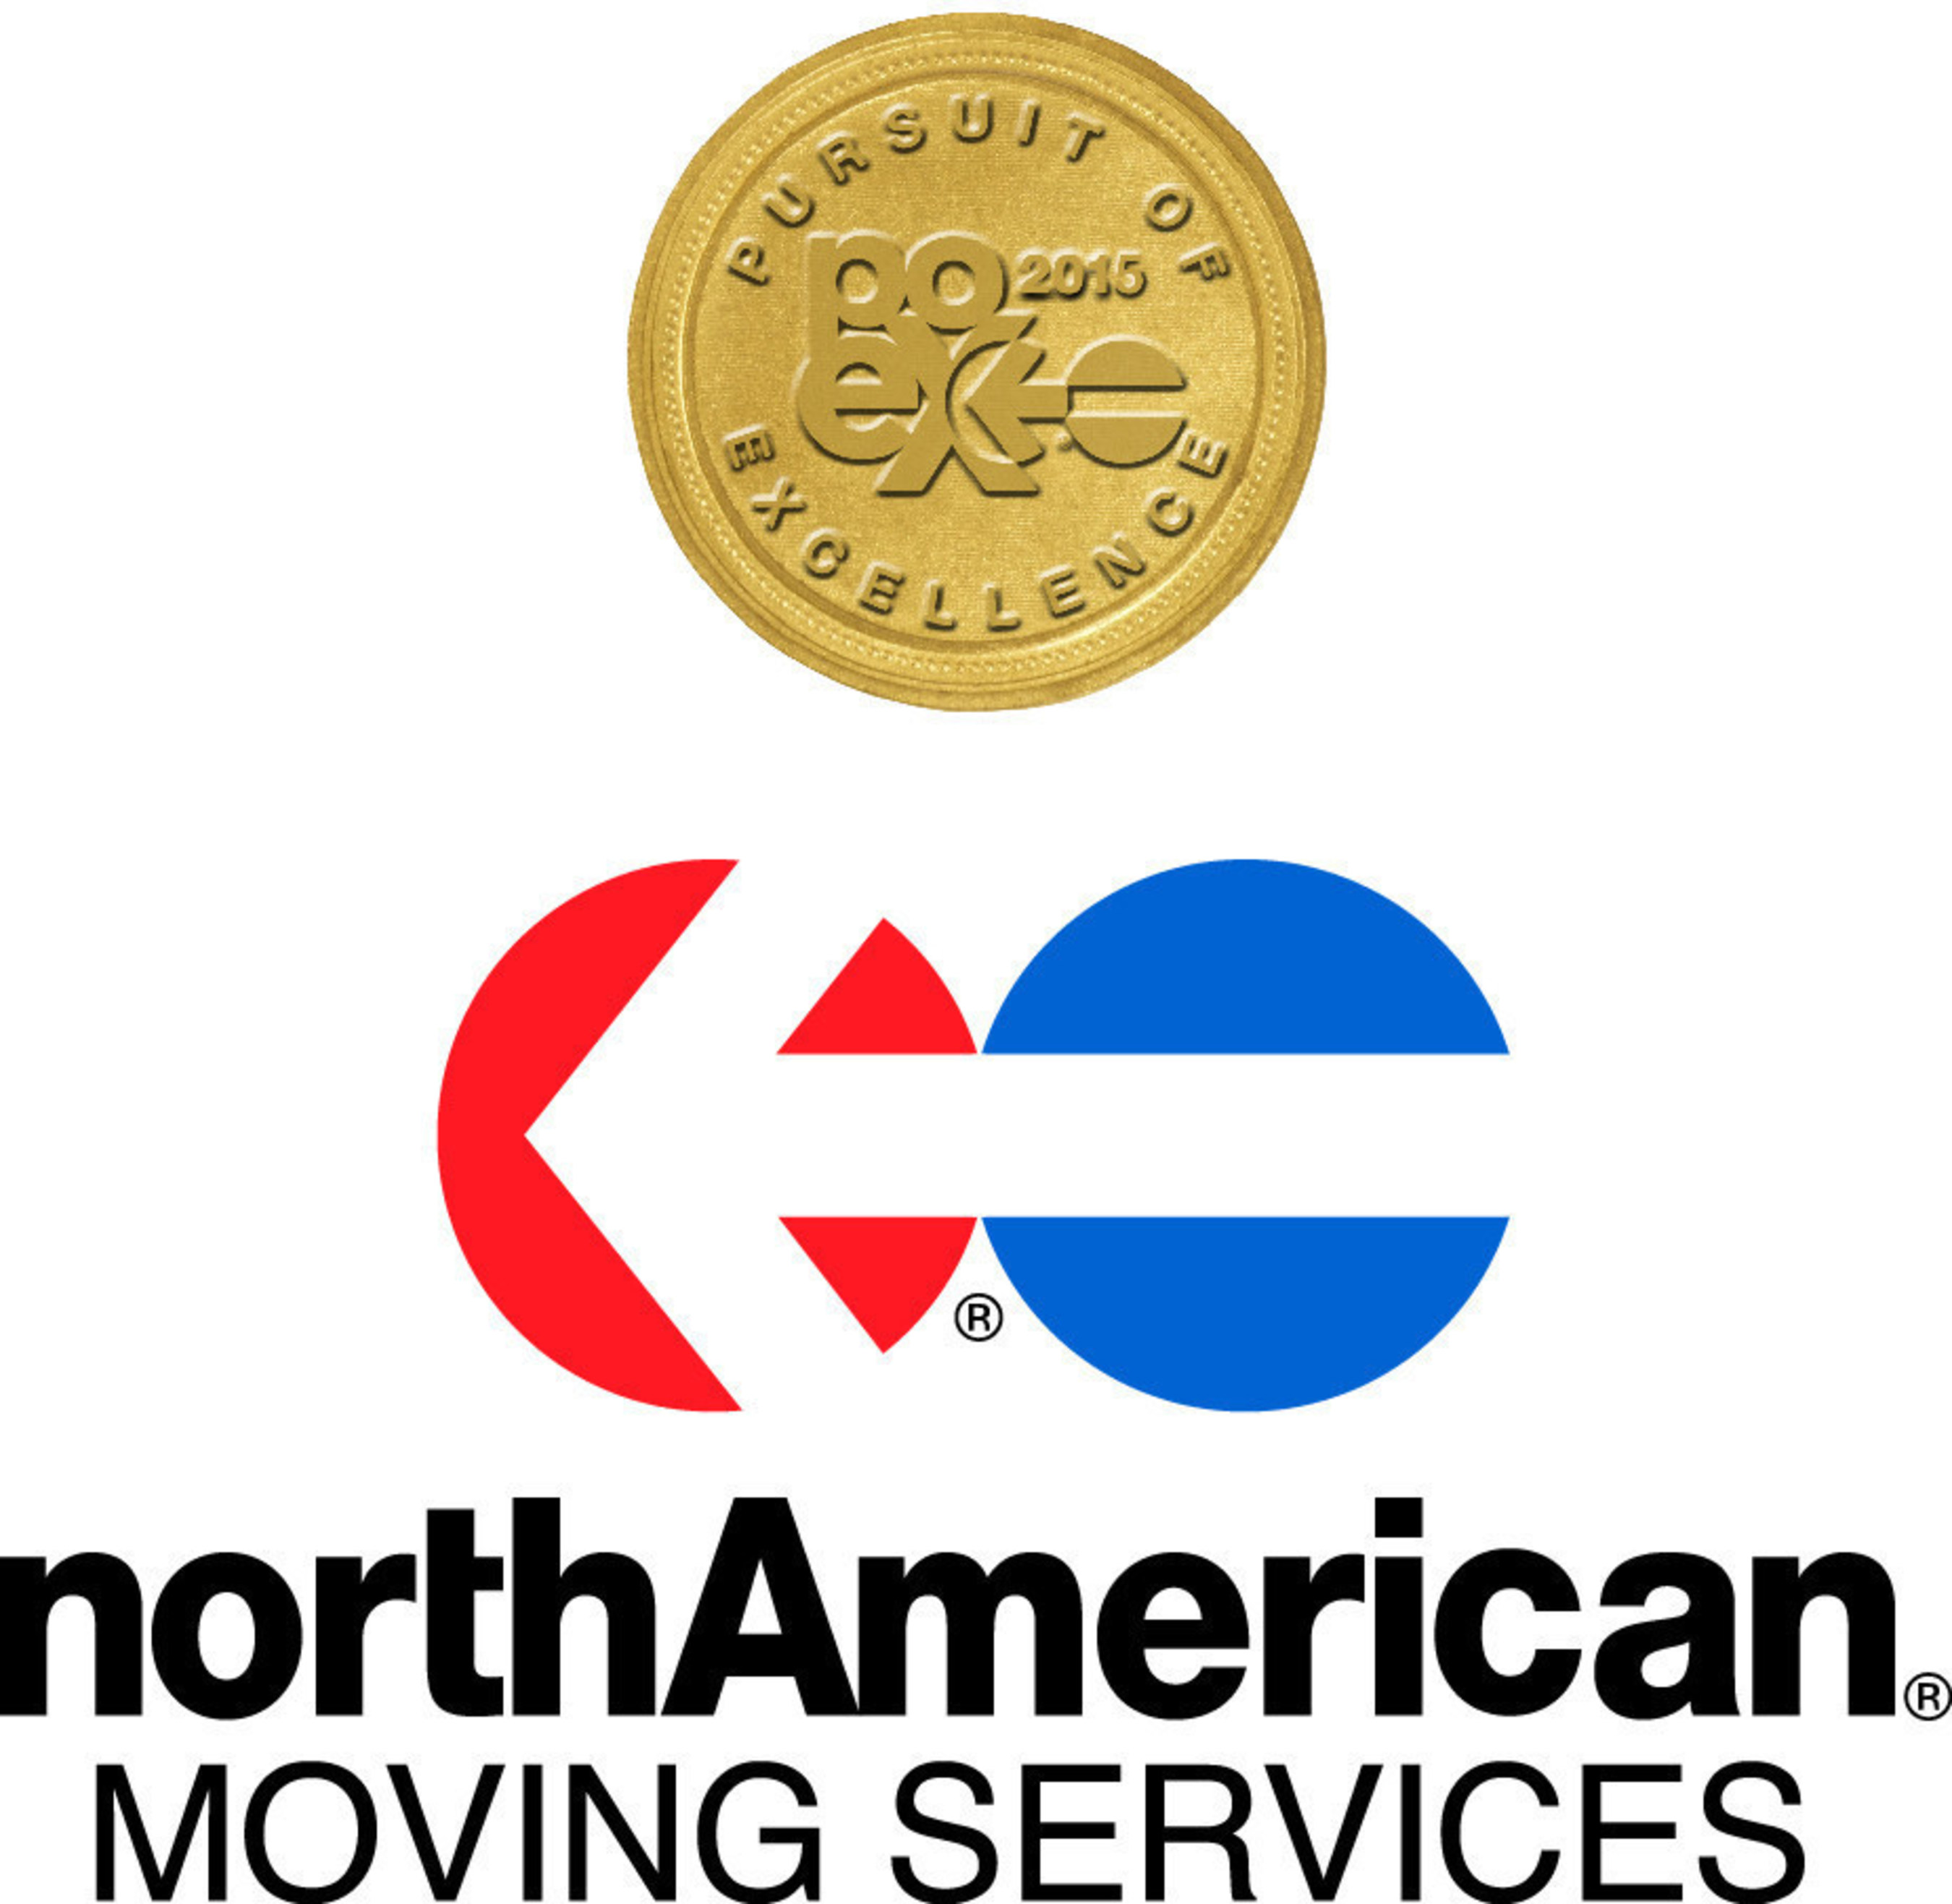 northAmerican Van Lines announces its 2015 Pursuit of Excellence winners. This quality program encourages northAmerican moving agents to excel in operations and service.